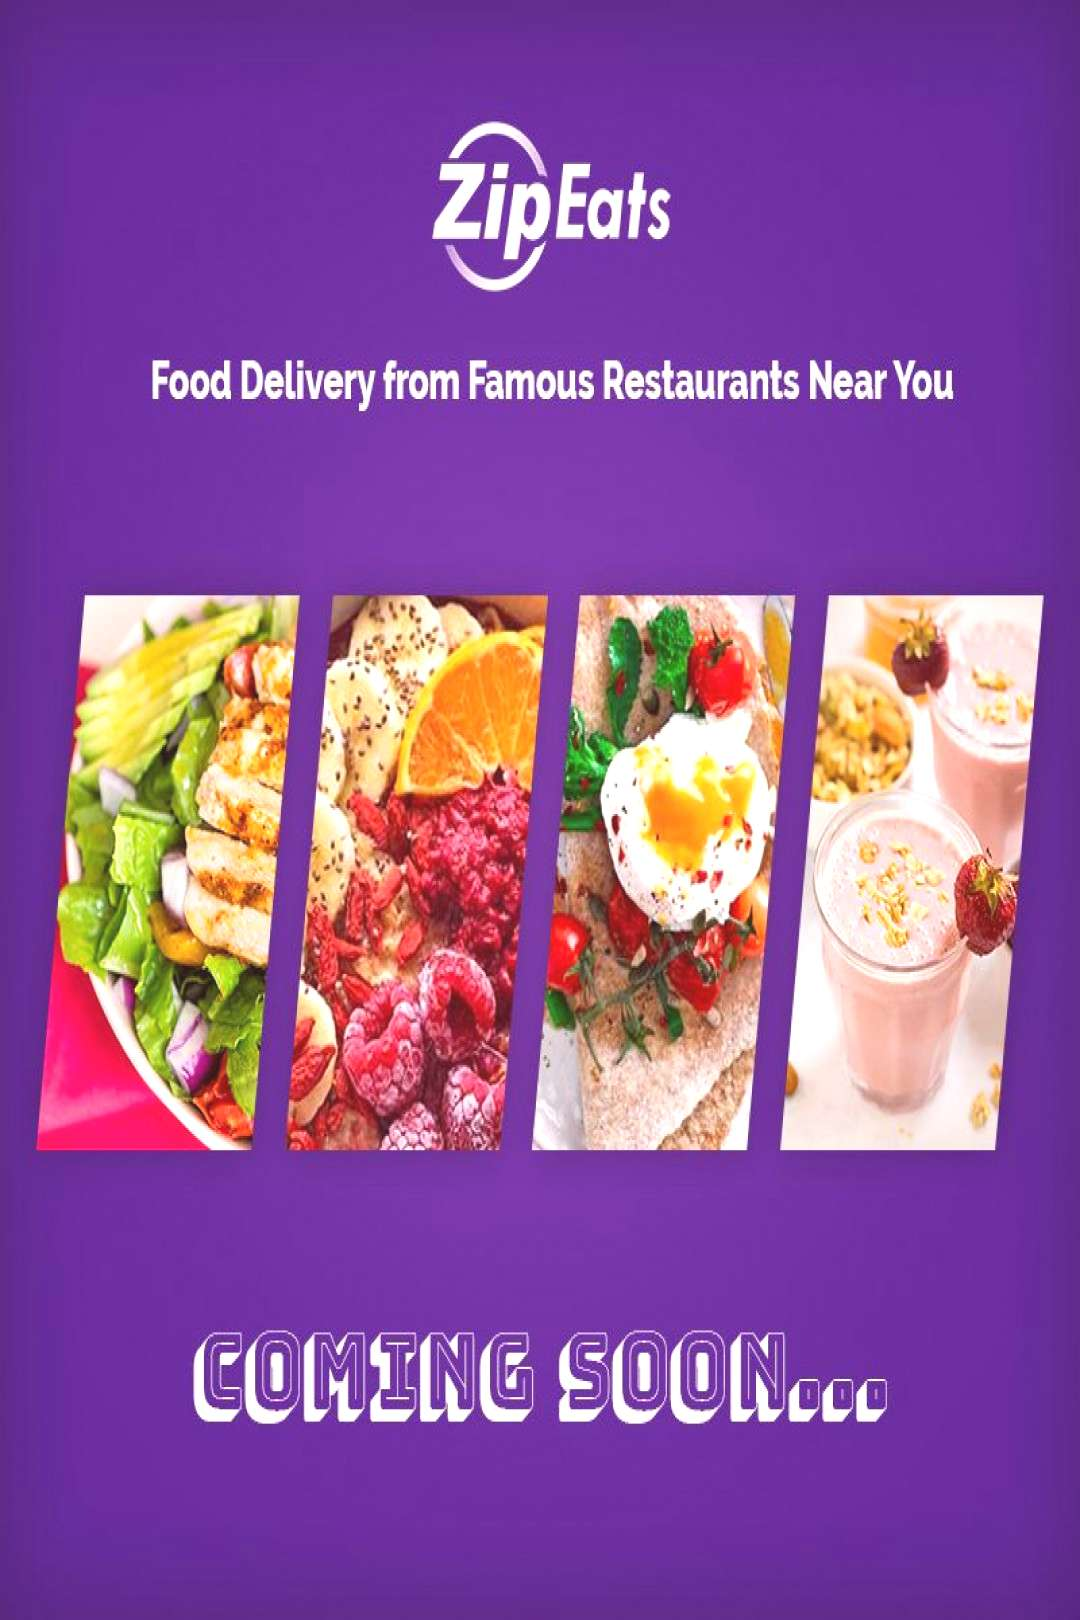 Food Delivery-Zip Eats Now sit home and order delicious food from famous Restaurants near you.?